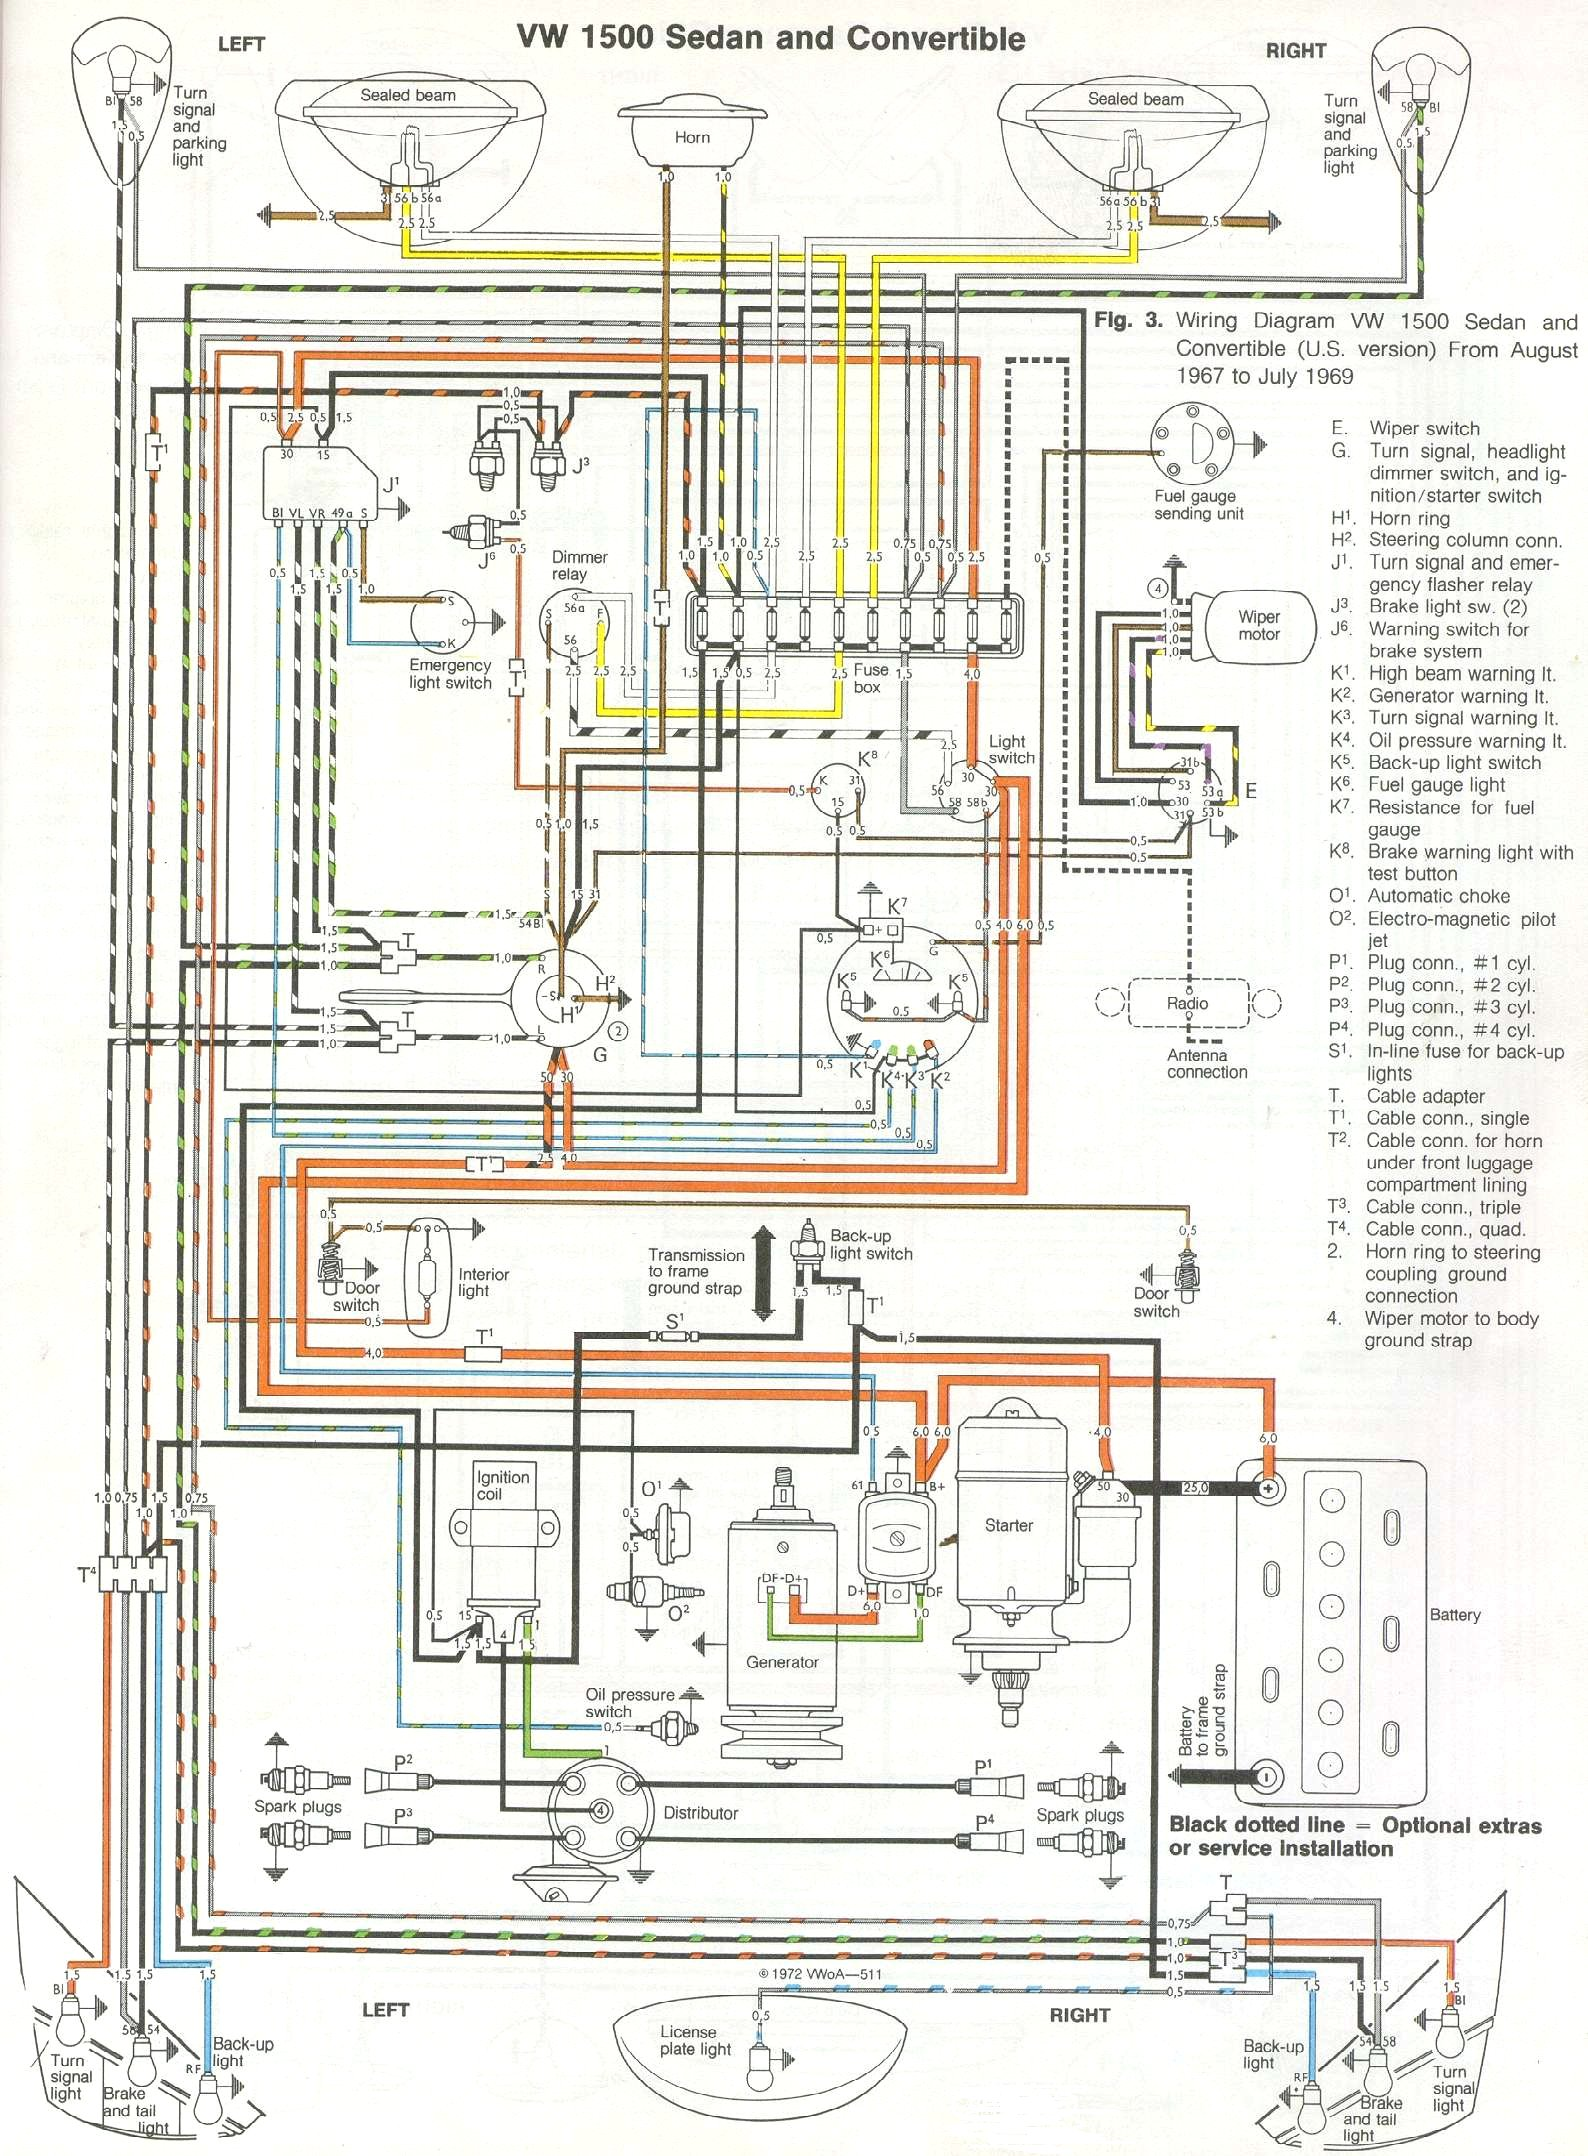 bug_6869 1969 71 beetle wiring diagram thegoldenbug com vw bug wiring diagram at readyjetset.co